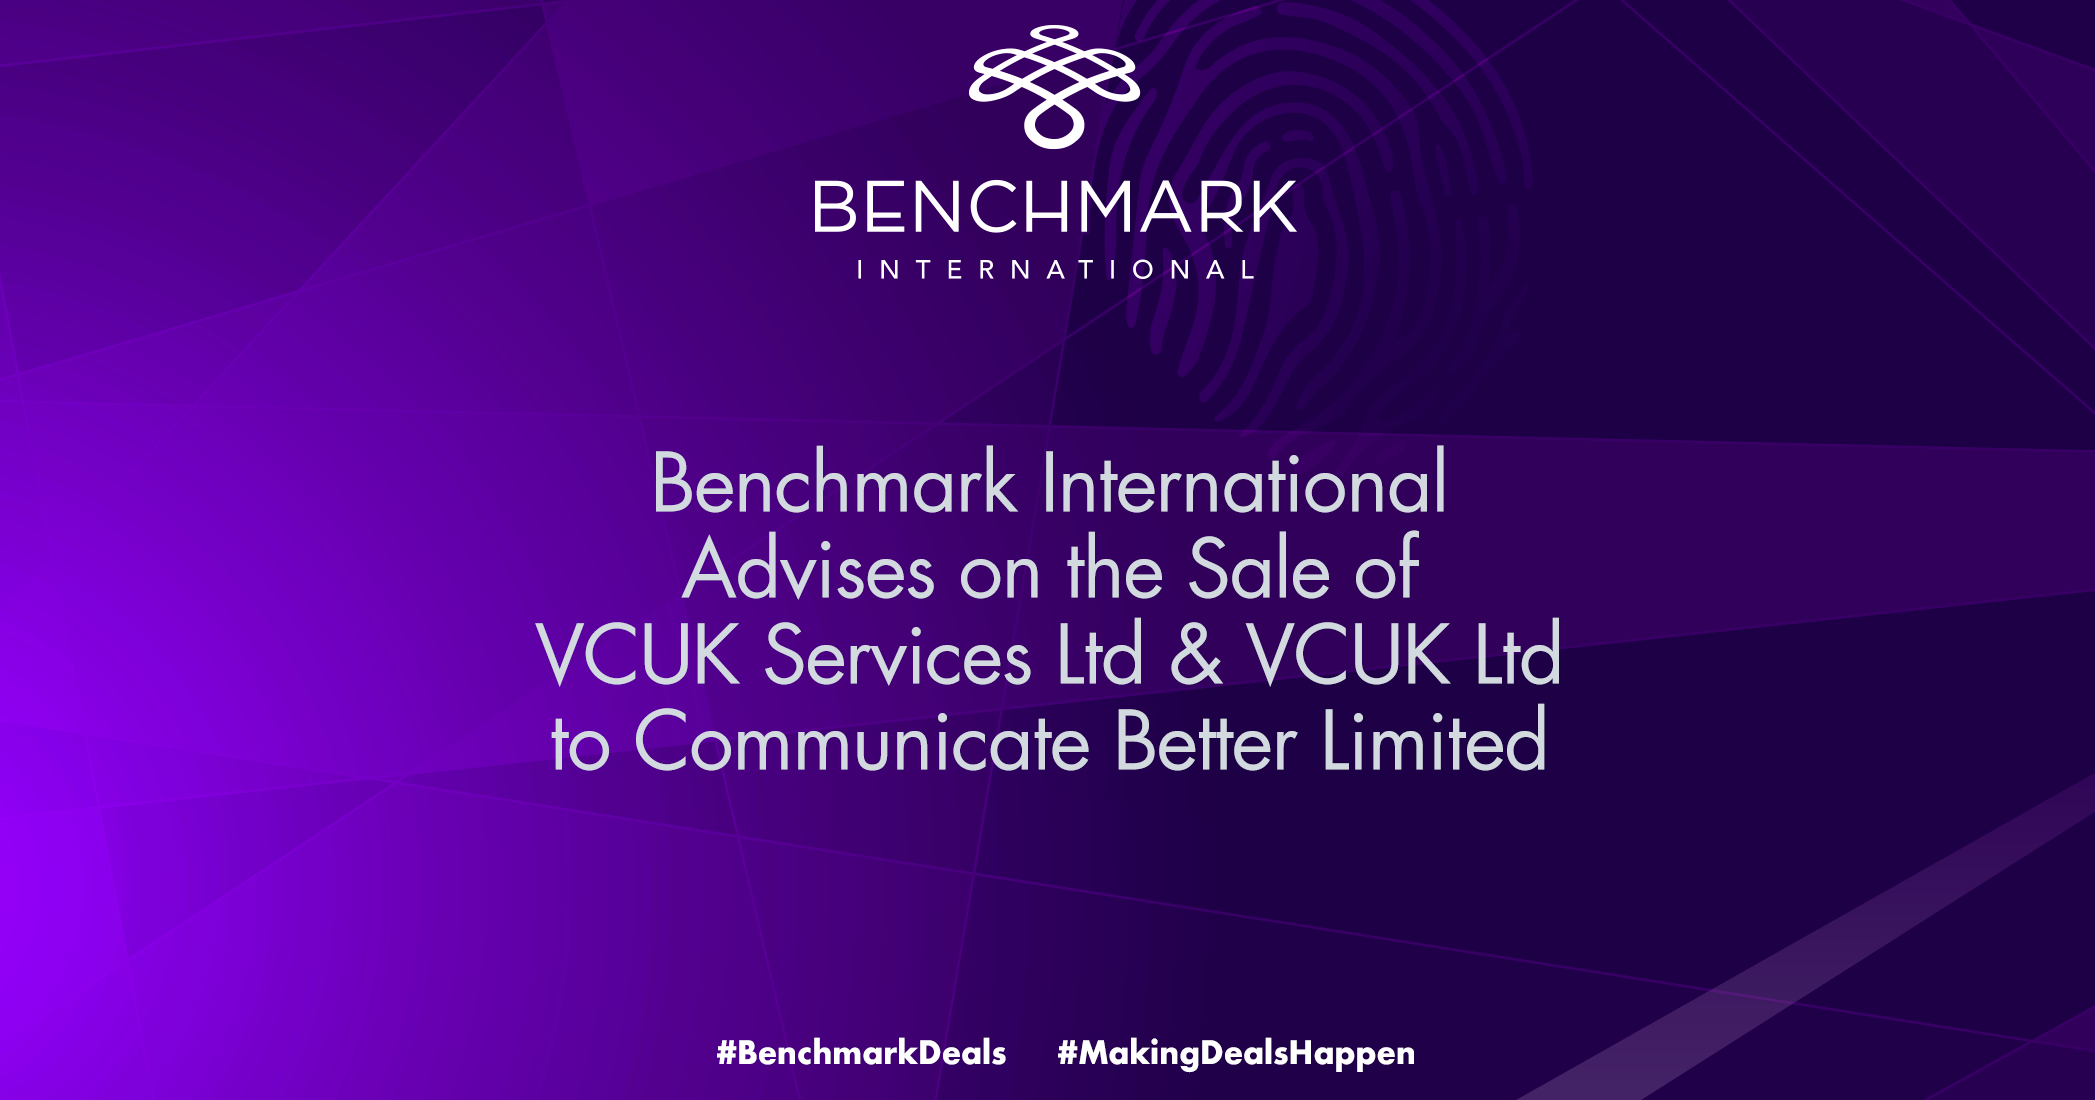 Benchmark International Advises on the Sale of VCUK Services Ltd & VCUK Ltd to Communicate Better Limited